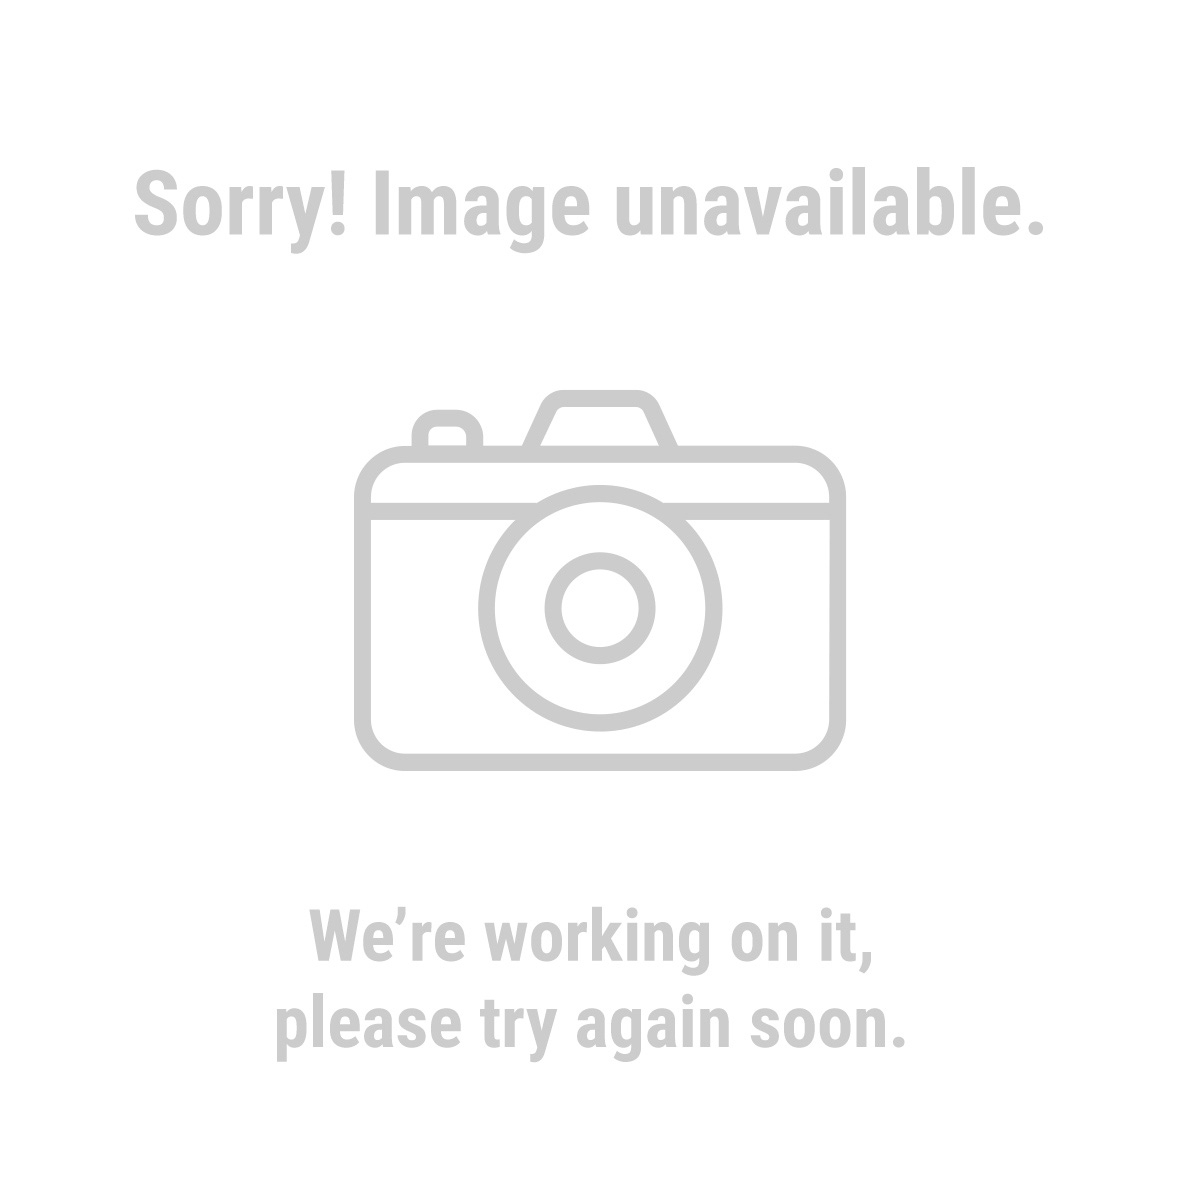 Haul-Master® 69673 3500 Lb. Step Bumper Receiver